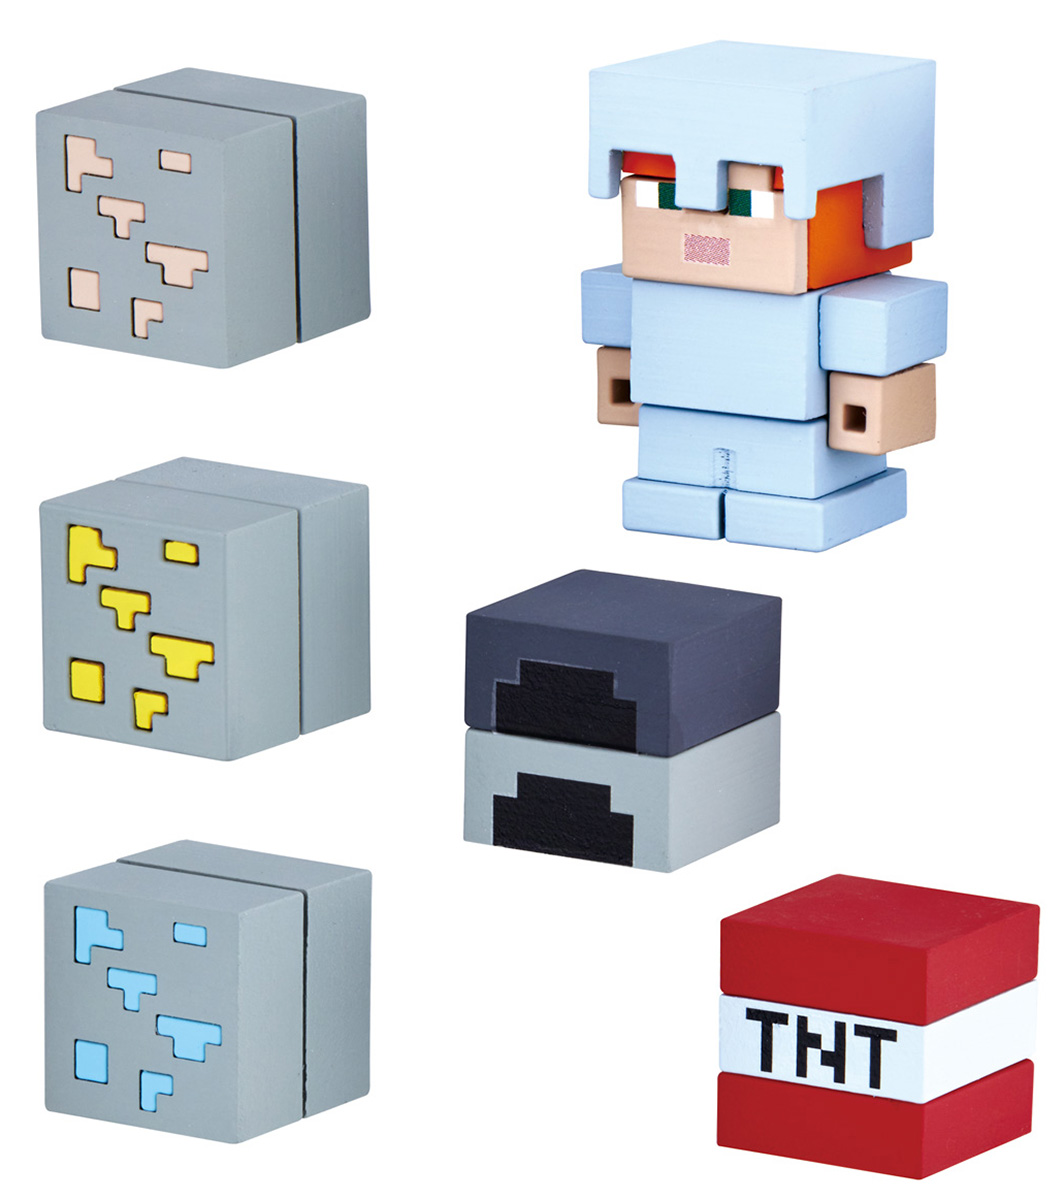 Bandai Фигурка Minecraft Mine-Cade Adv Pack Alex W 4,1 см bandai фигурка minecraft mine charact box villager 4 см